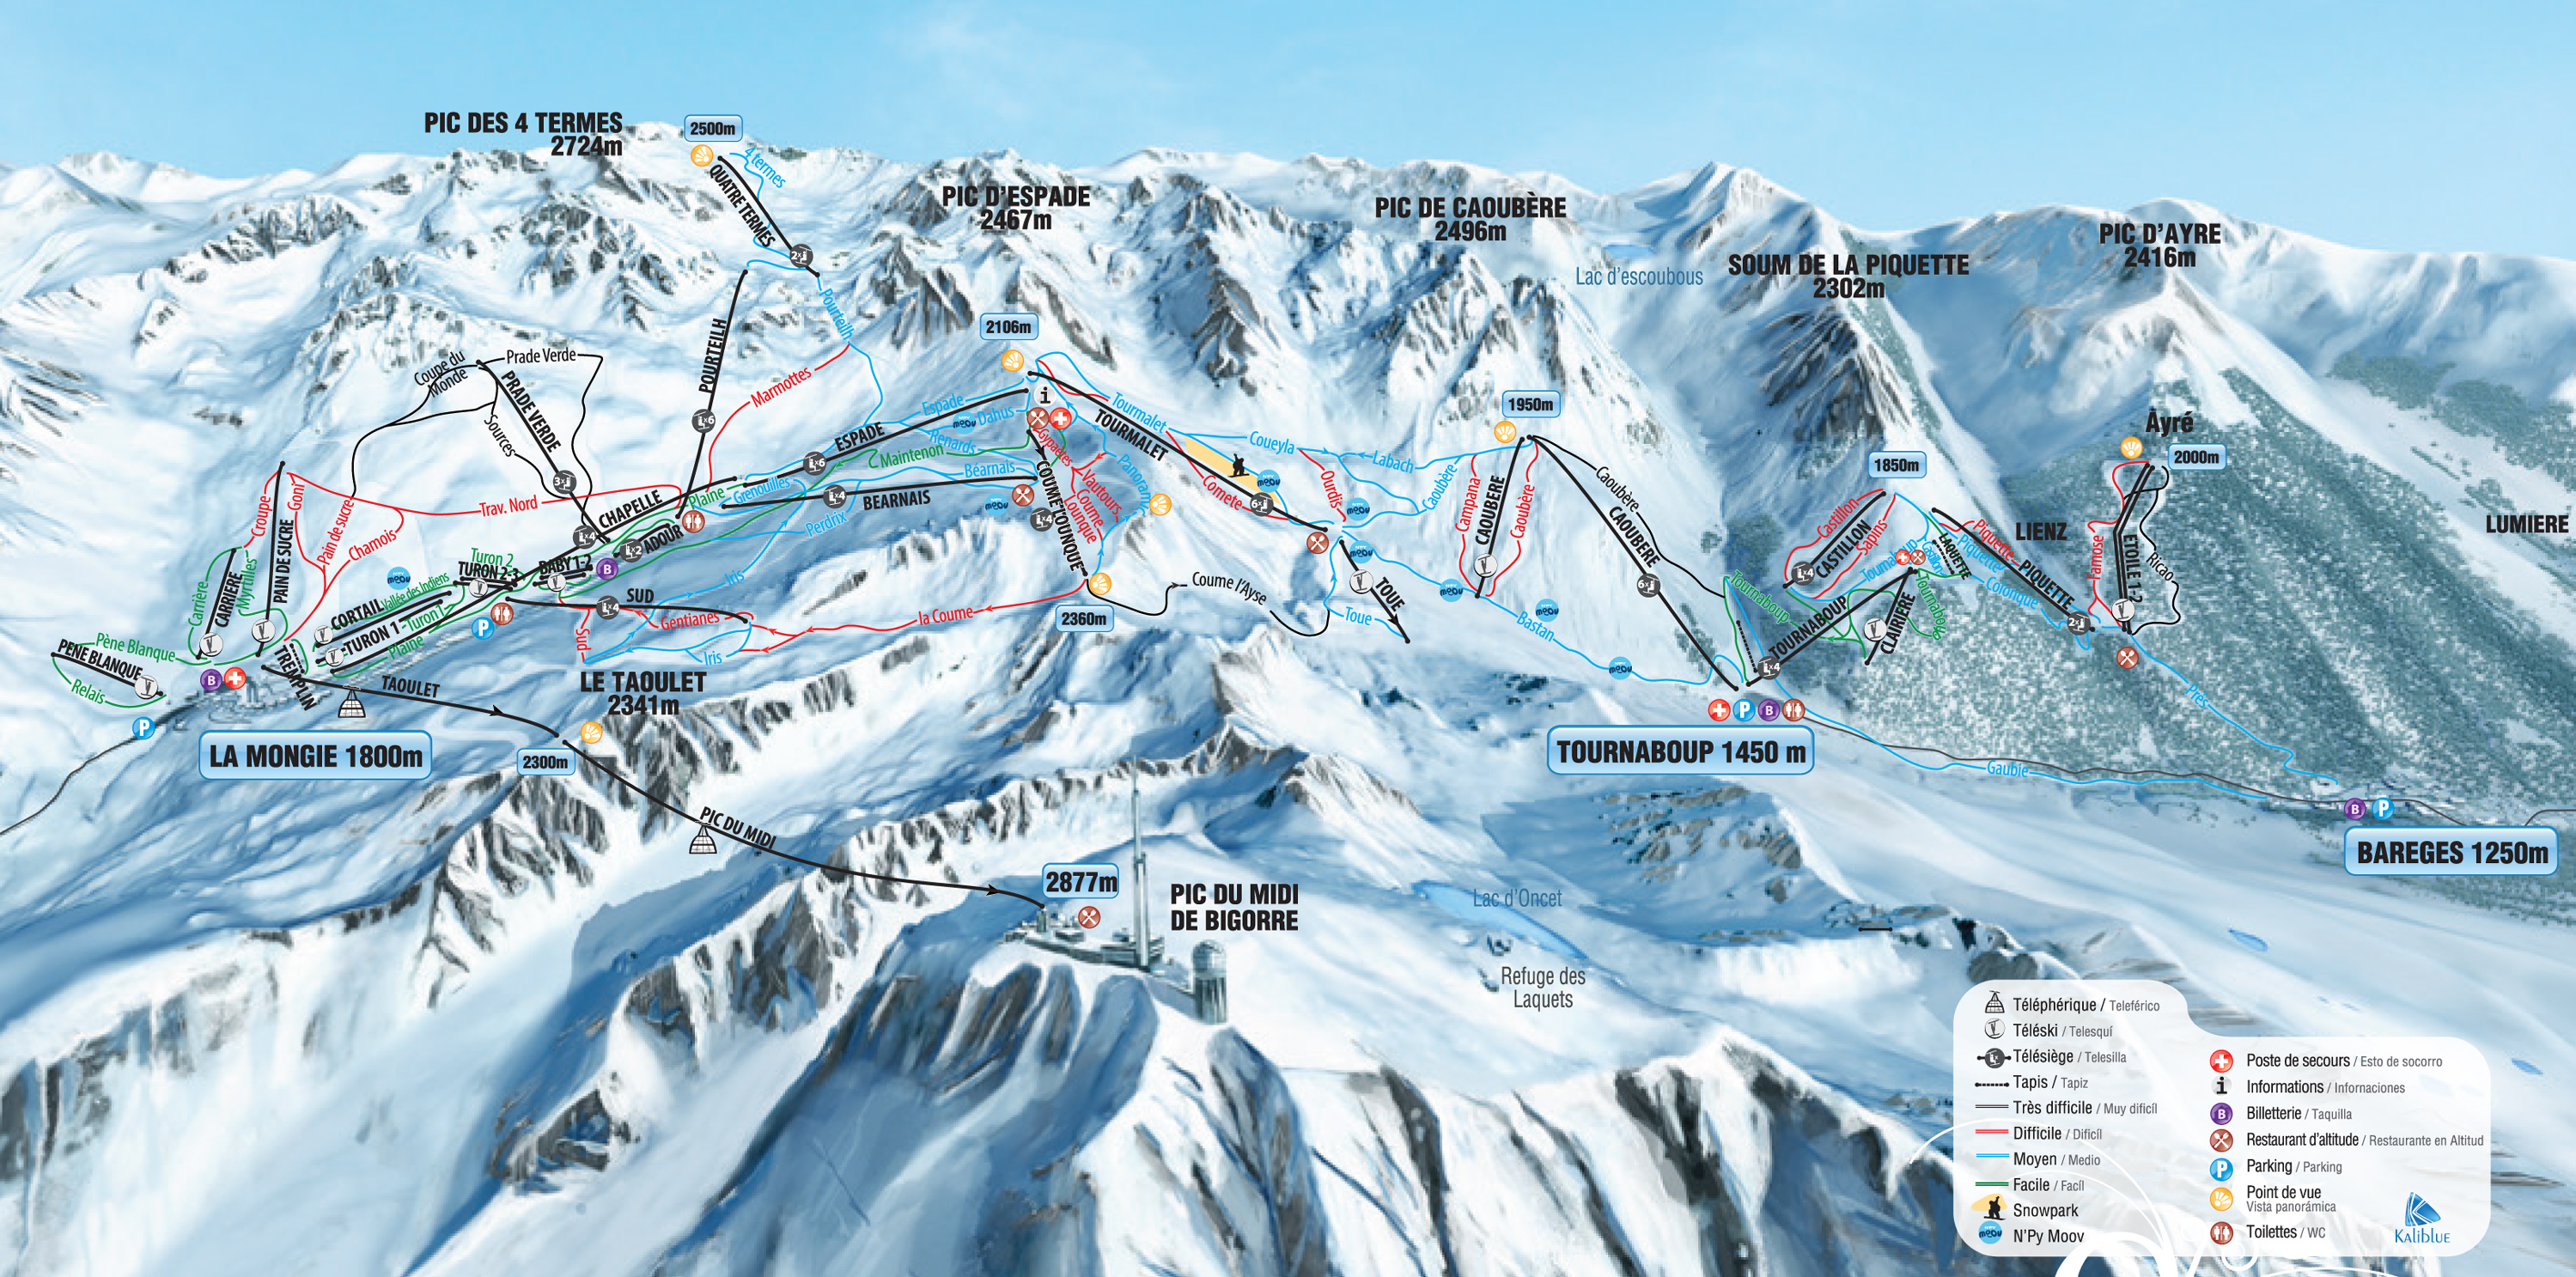 La Mongie book apartments and chalets with skifrancecom